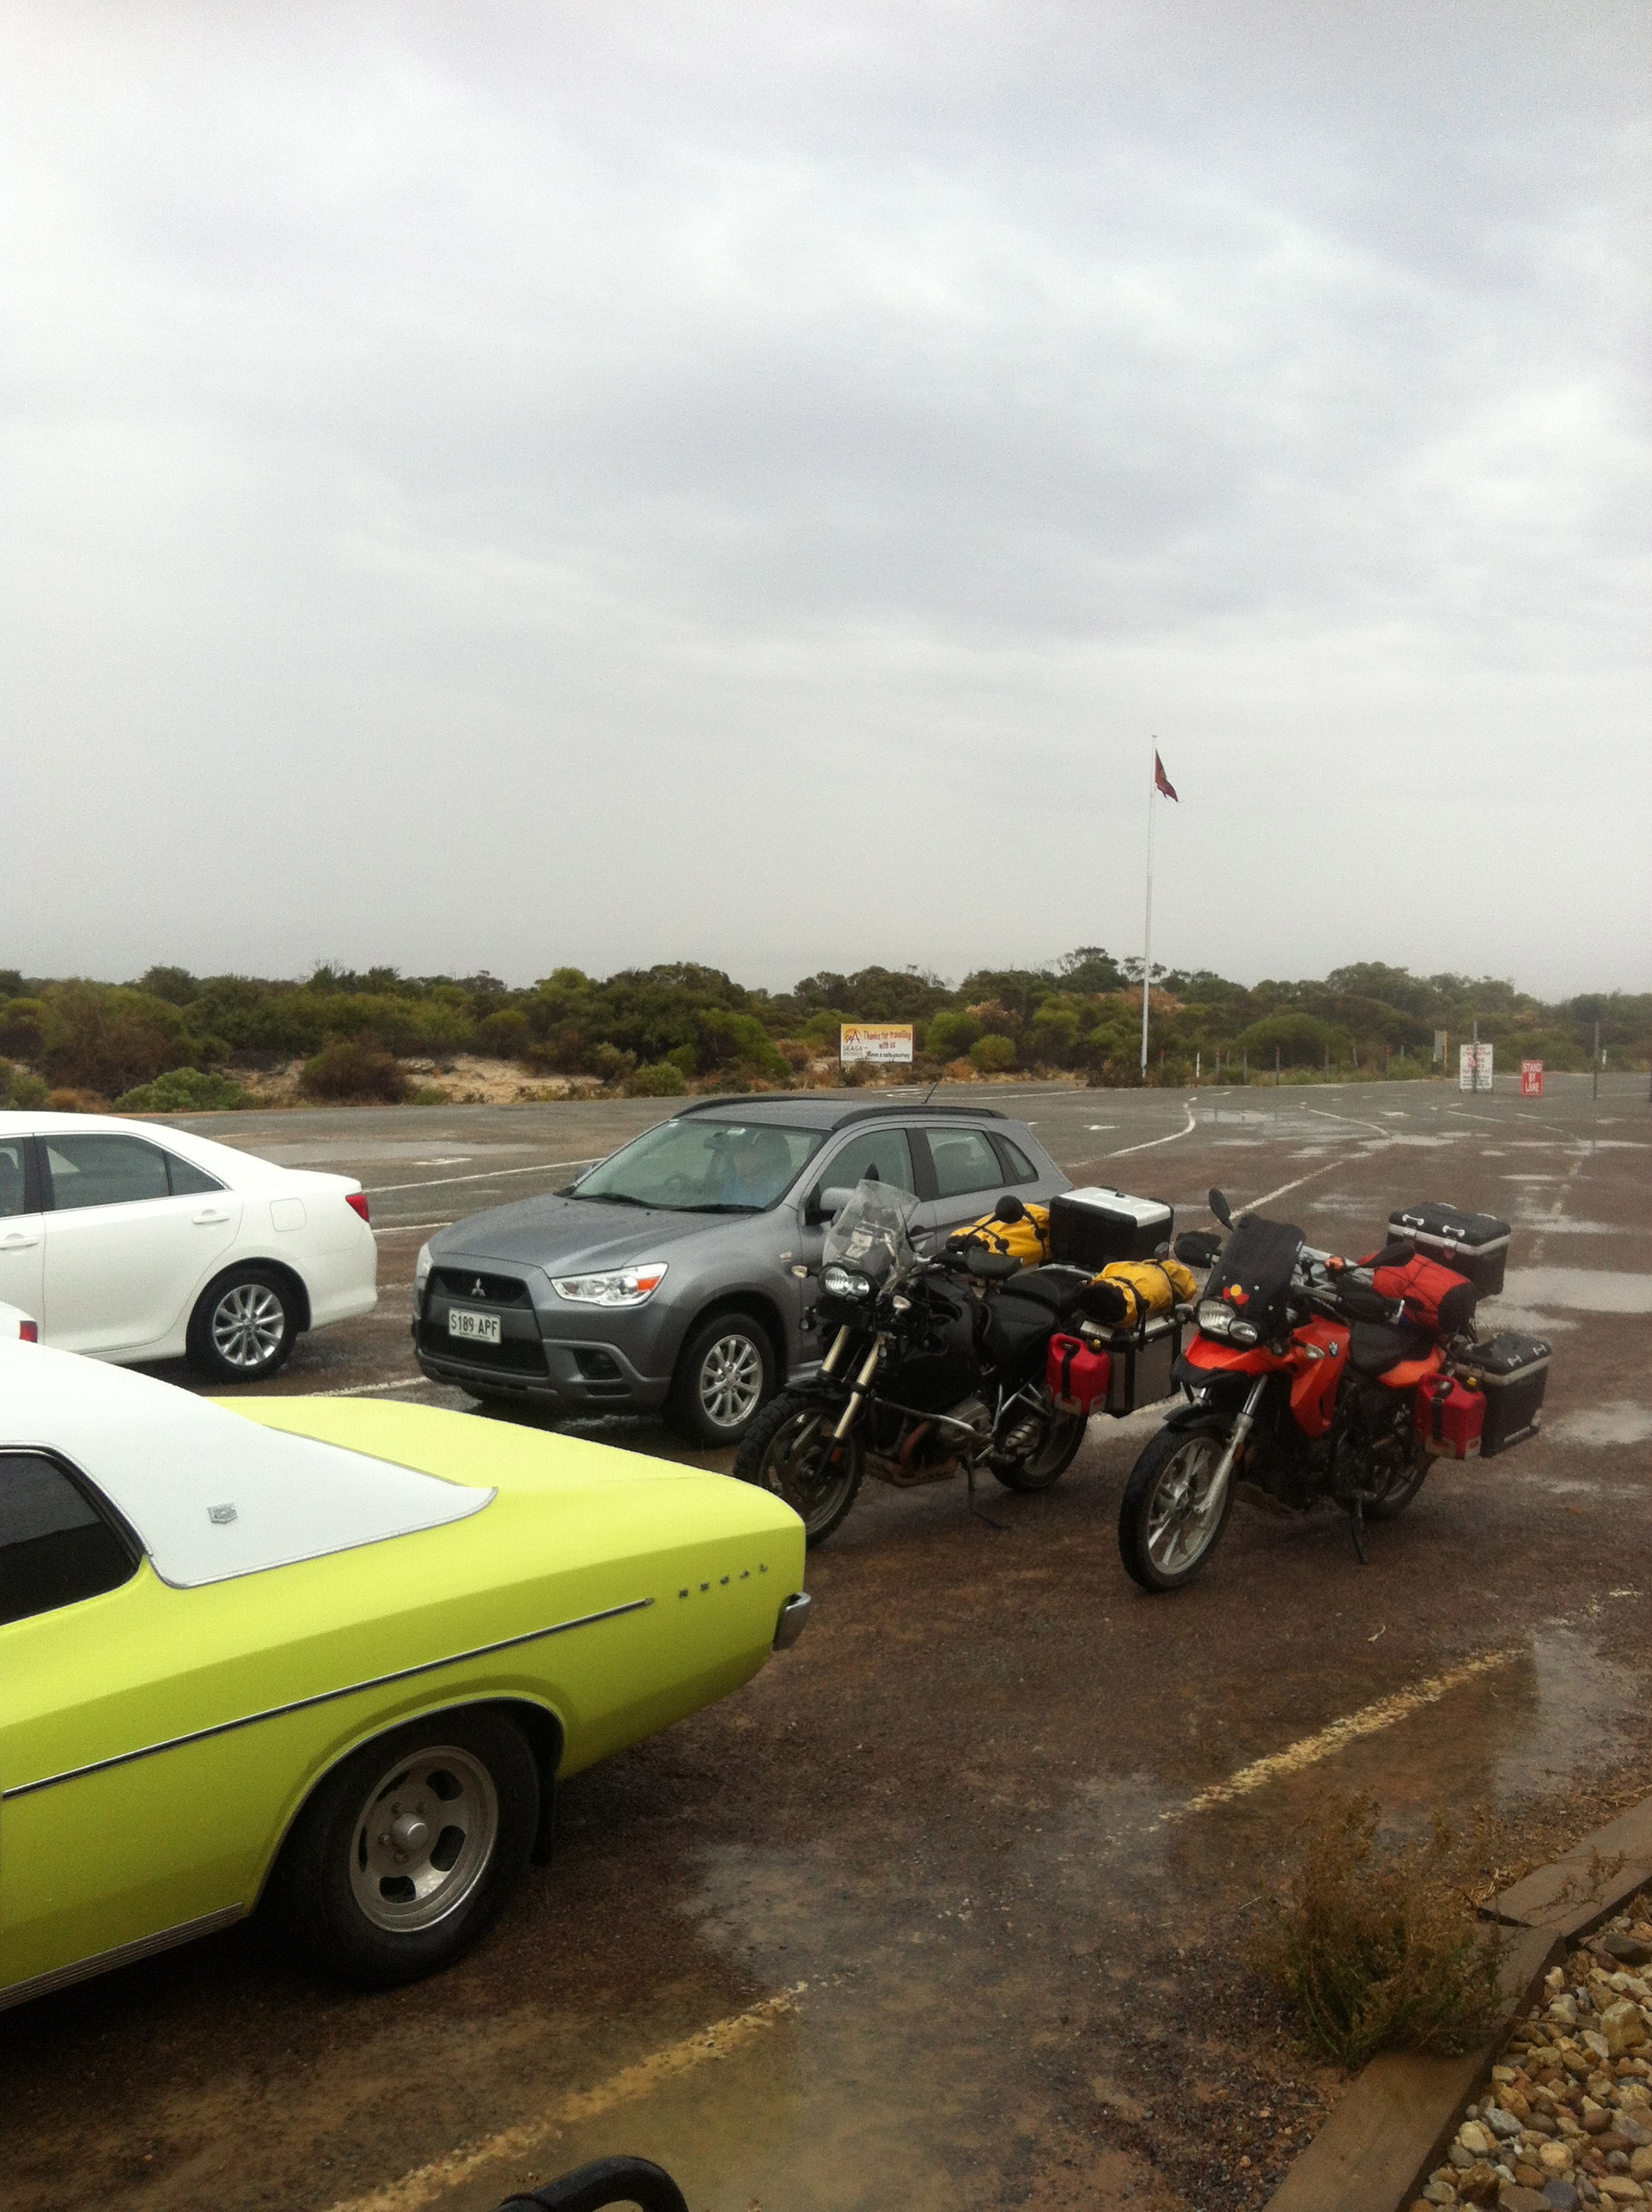 Waiting for the SeaSA ferry